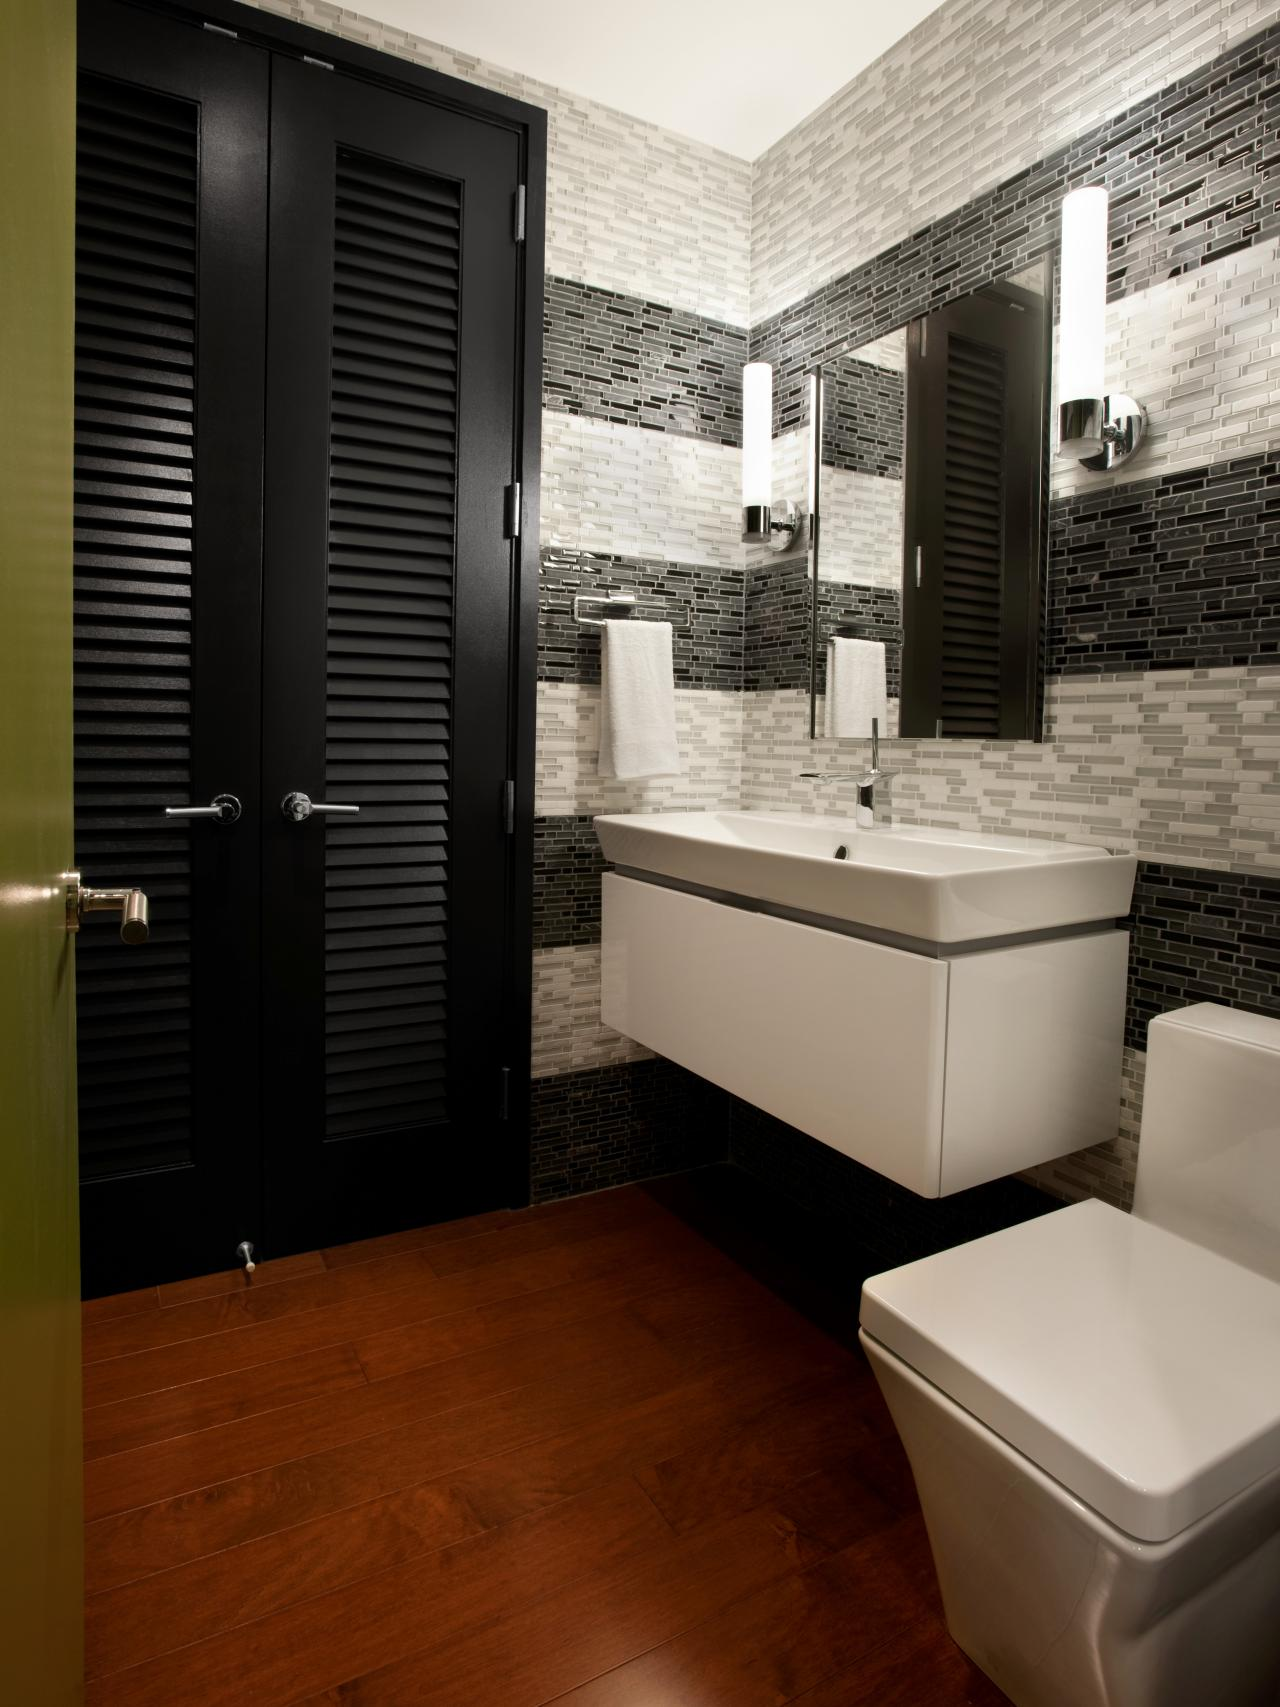 Contemporary Best Bathrooms Designs lovely modern small bathroom design best ideas about modern small bathrooms on pinterest ideas Modern Bathroom Design Ideas Pictures Tips From Hgtv Hgtv